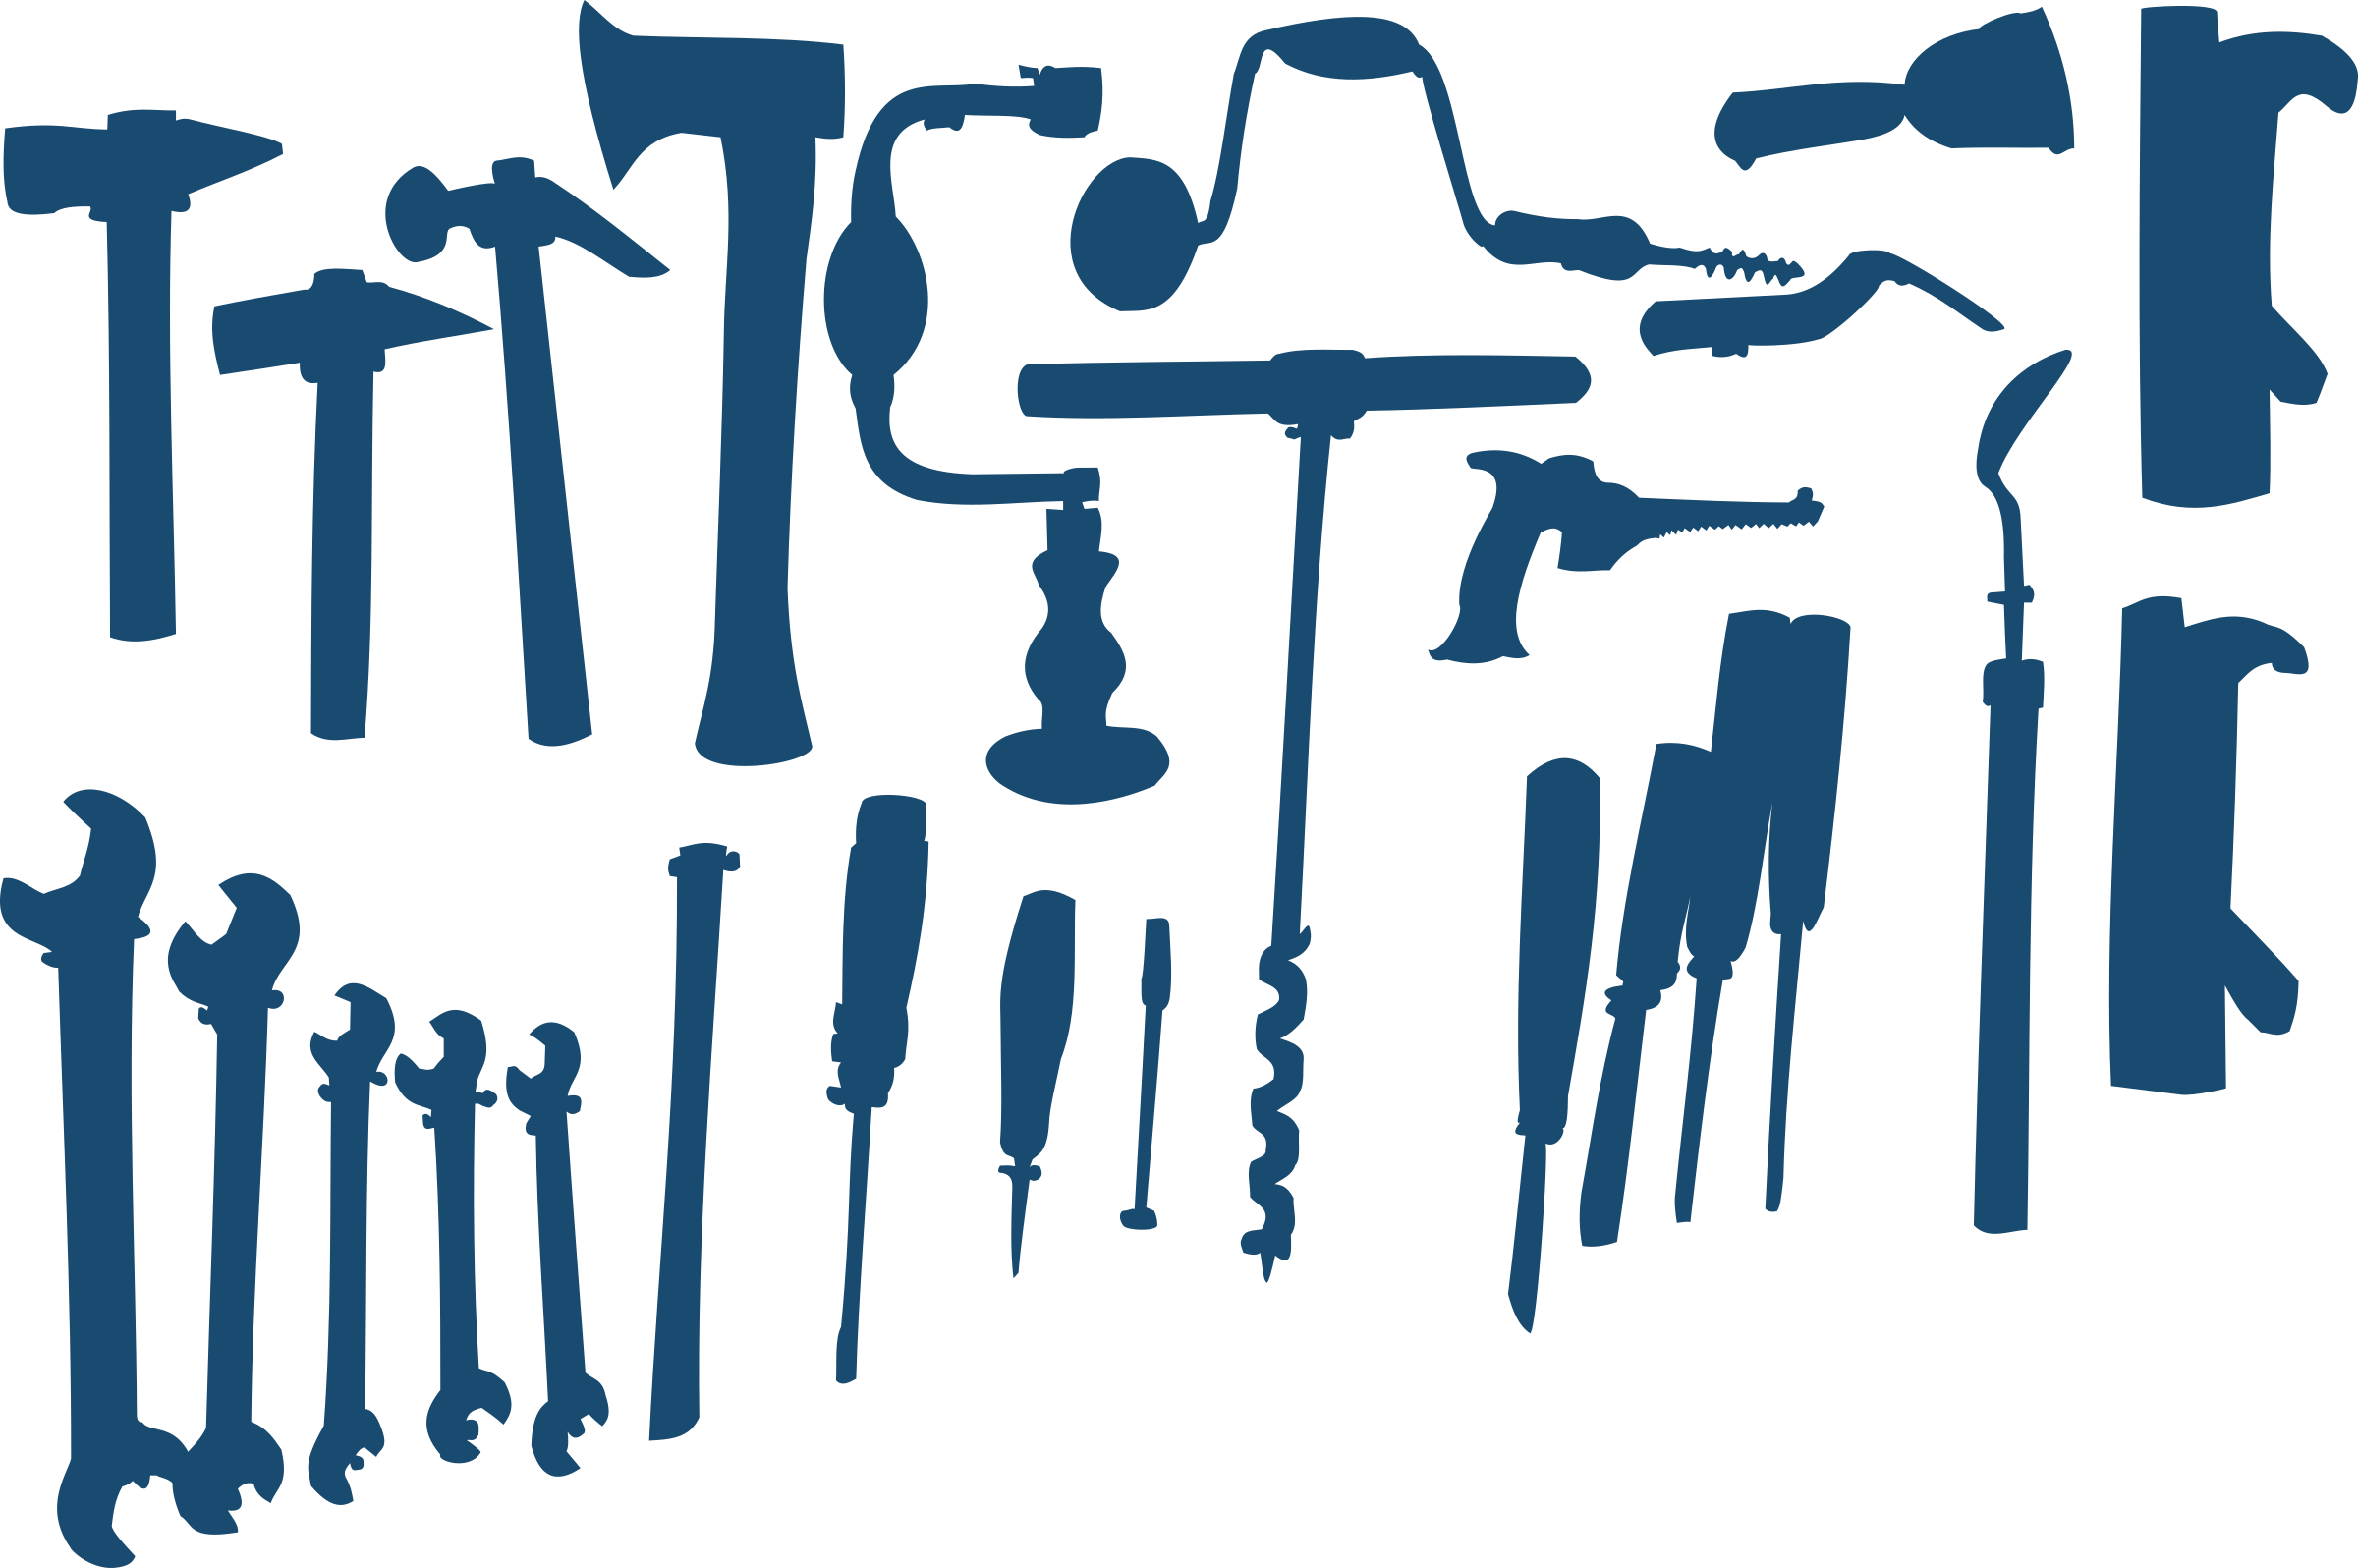 Tool wall clipart - Clipground